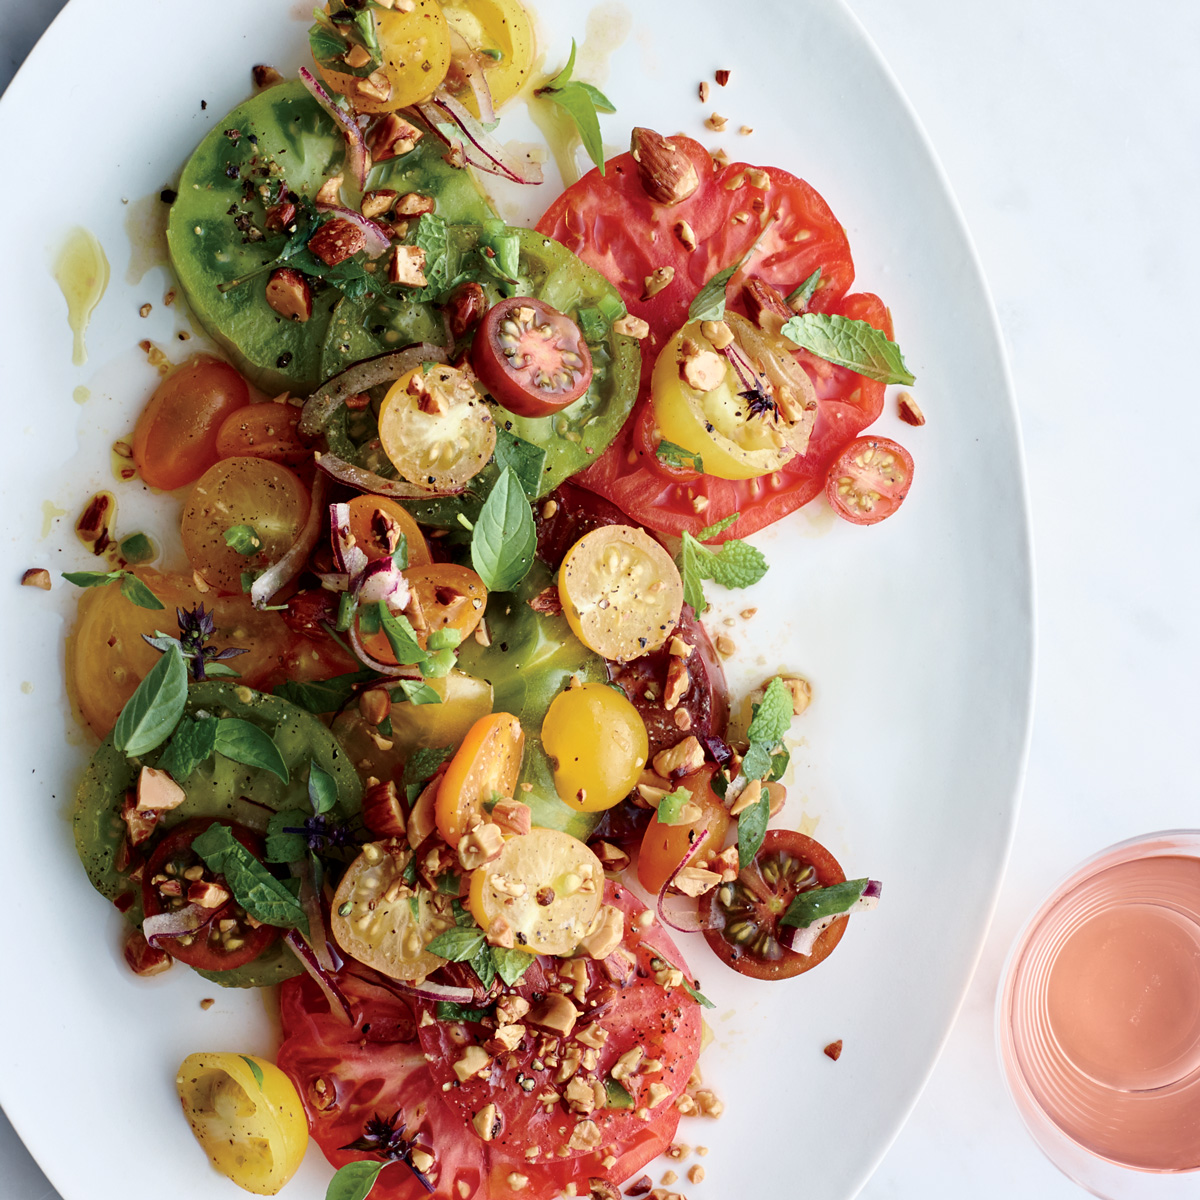 Tomatoes with Herbs and Almond Vinaigrette